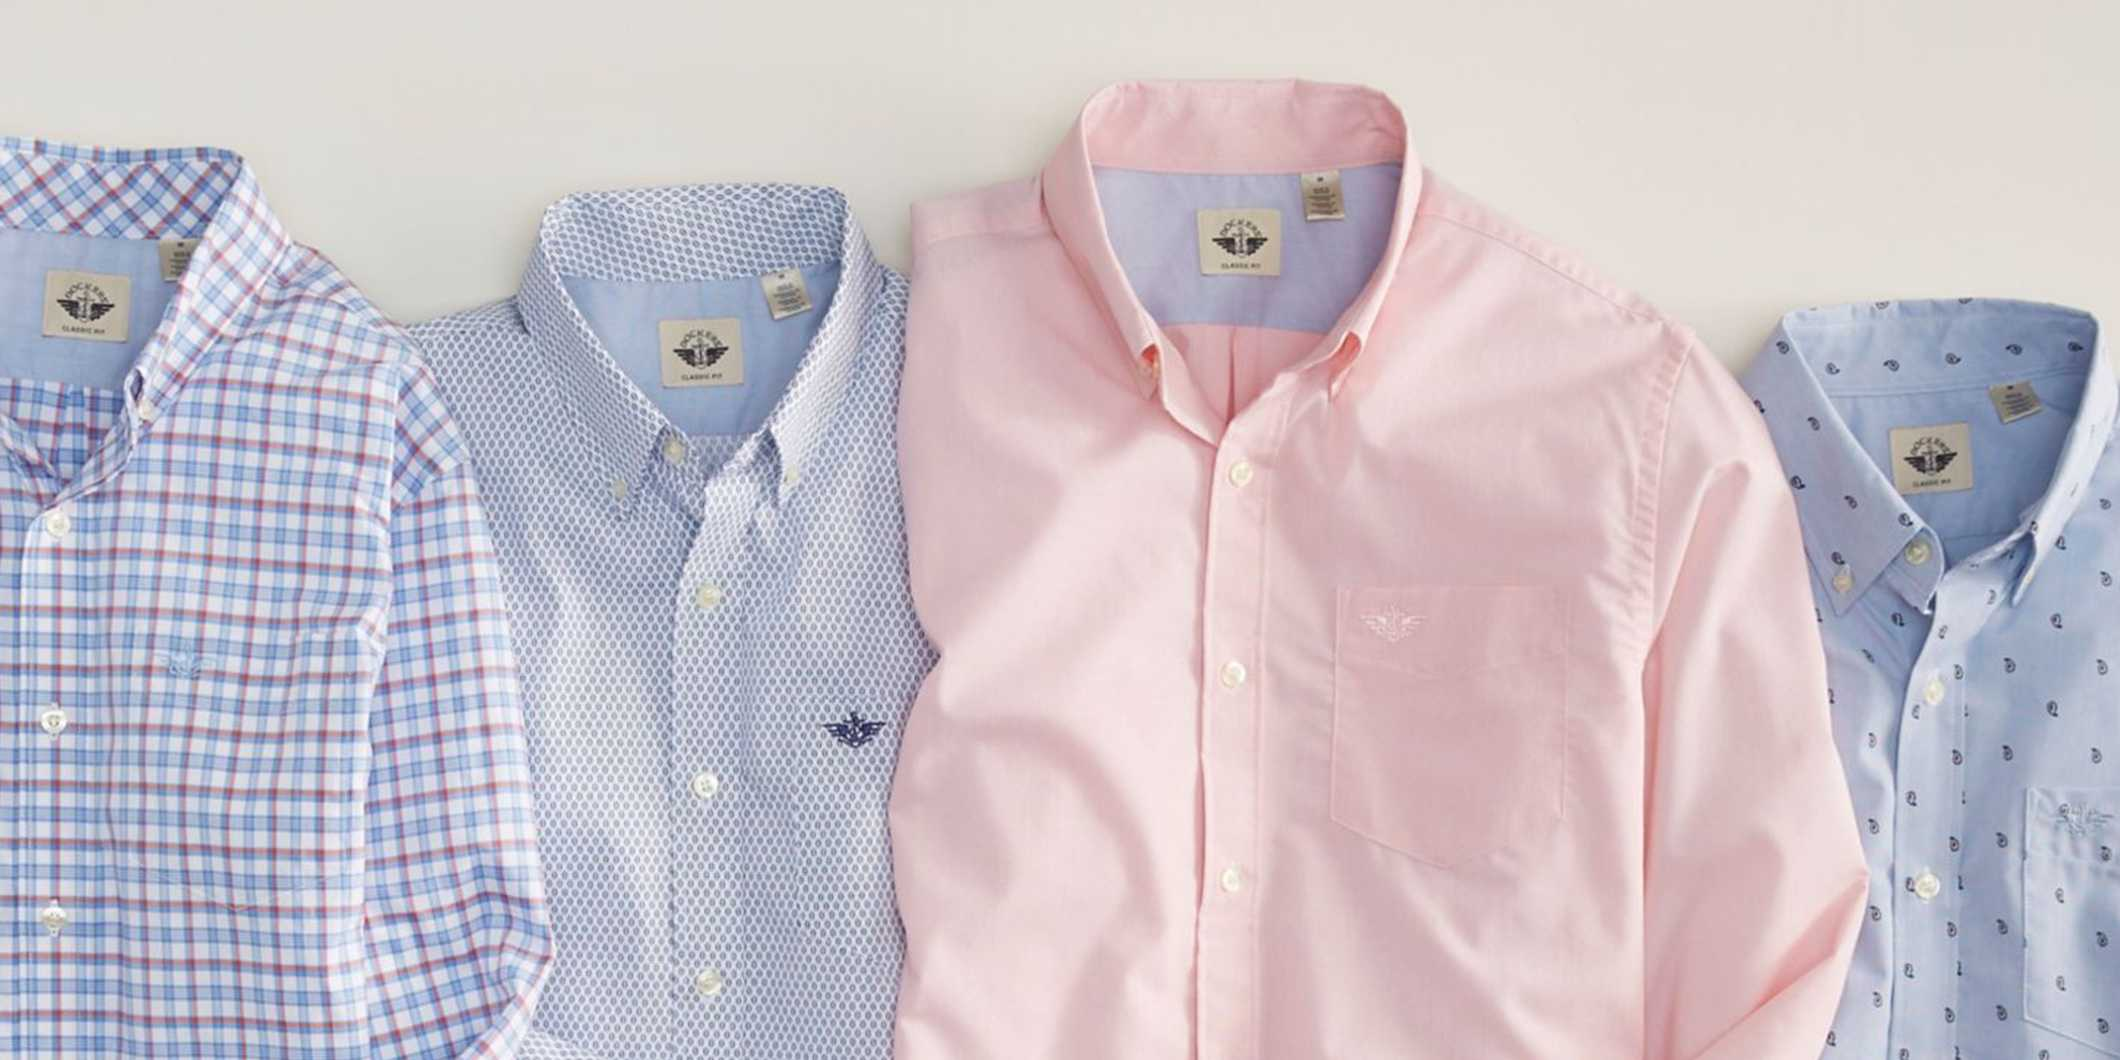 Shirt Collars & Necklines